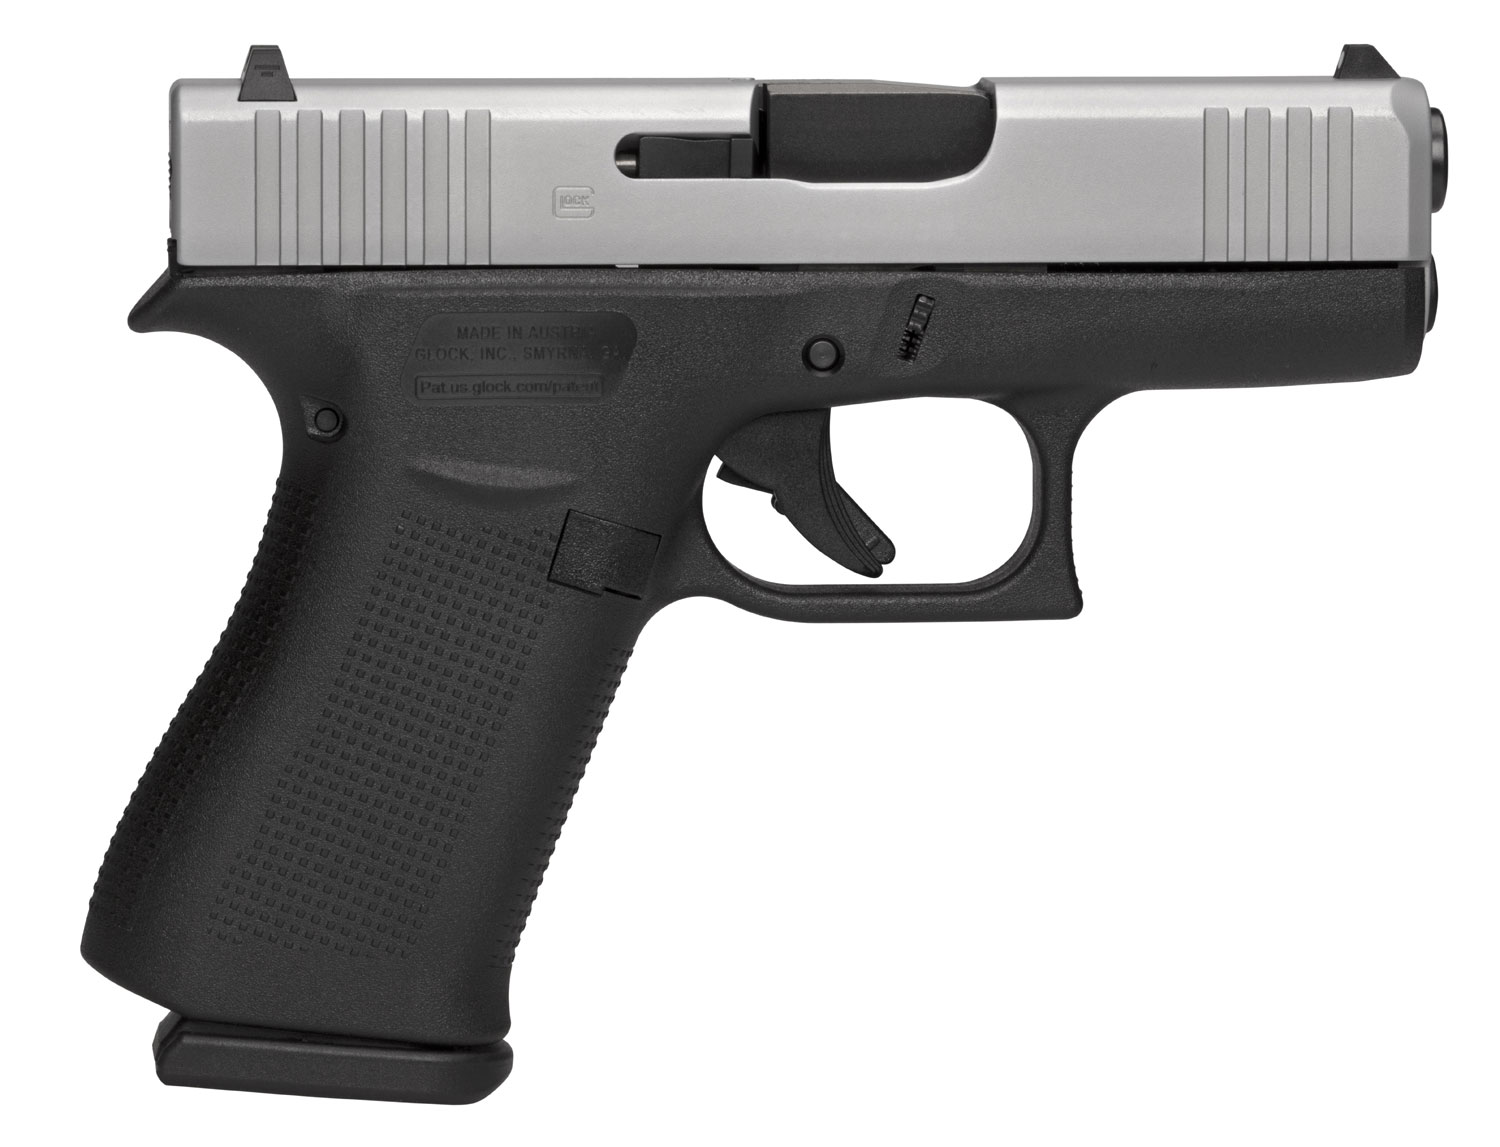 Glock PX435SL701 G43X Subcompact 9mm Luger Double 3.41